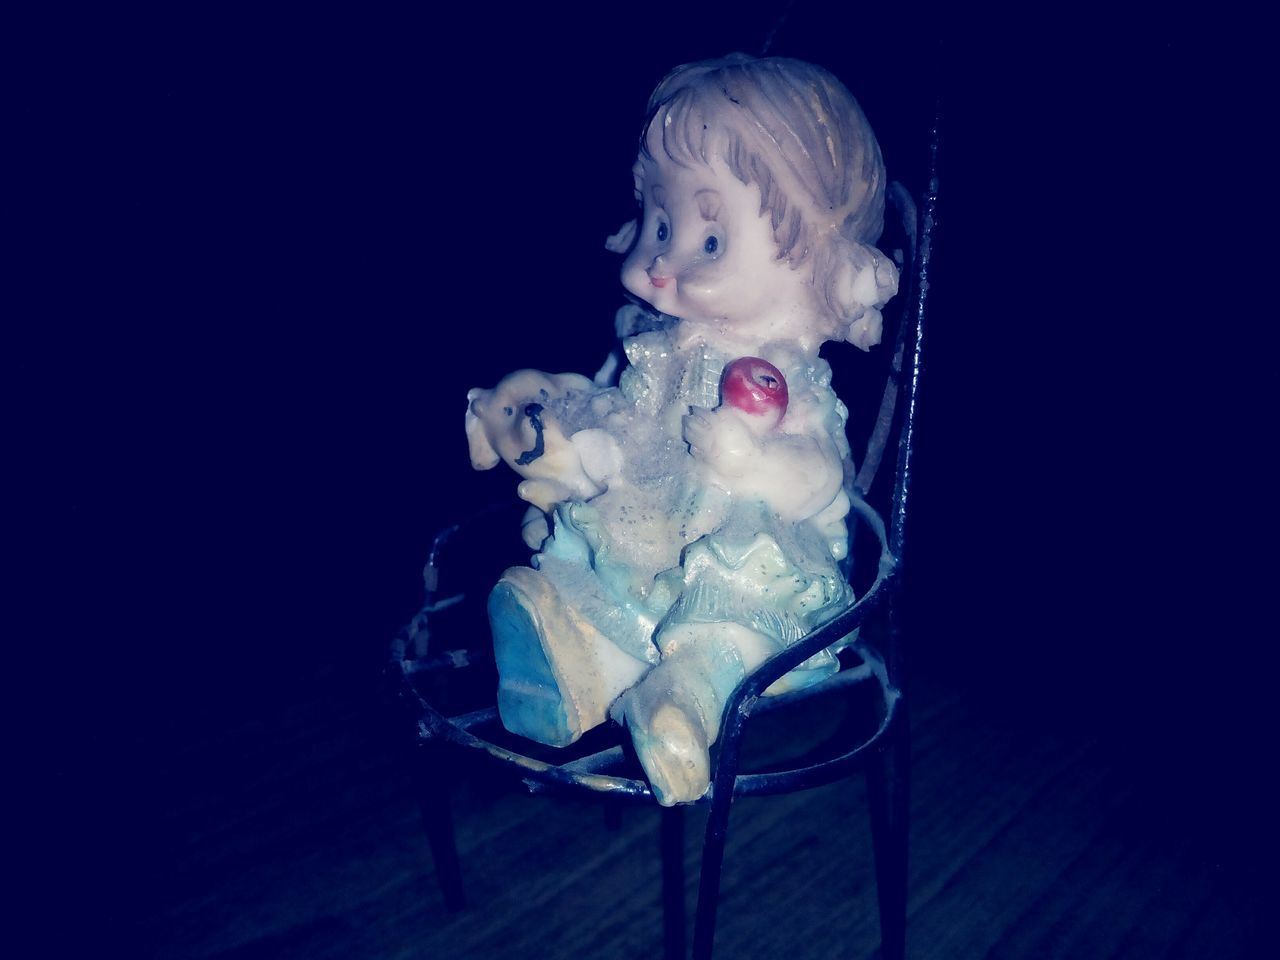 chair, doll, indoors, one person, childhood, night, close-up, people